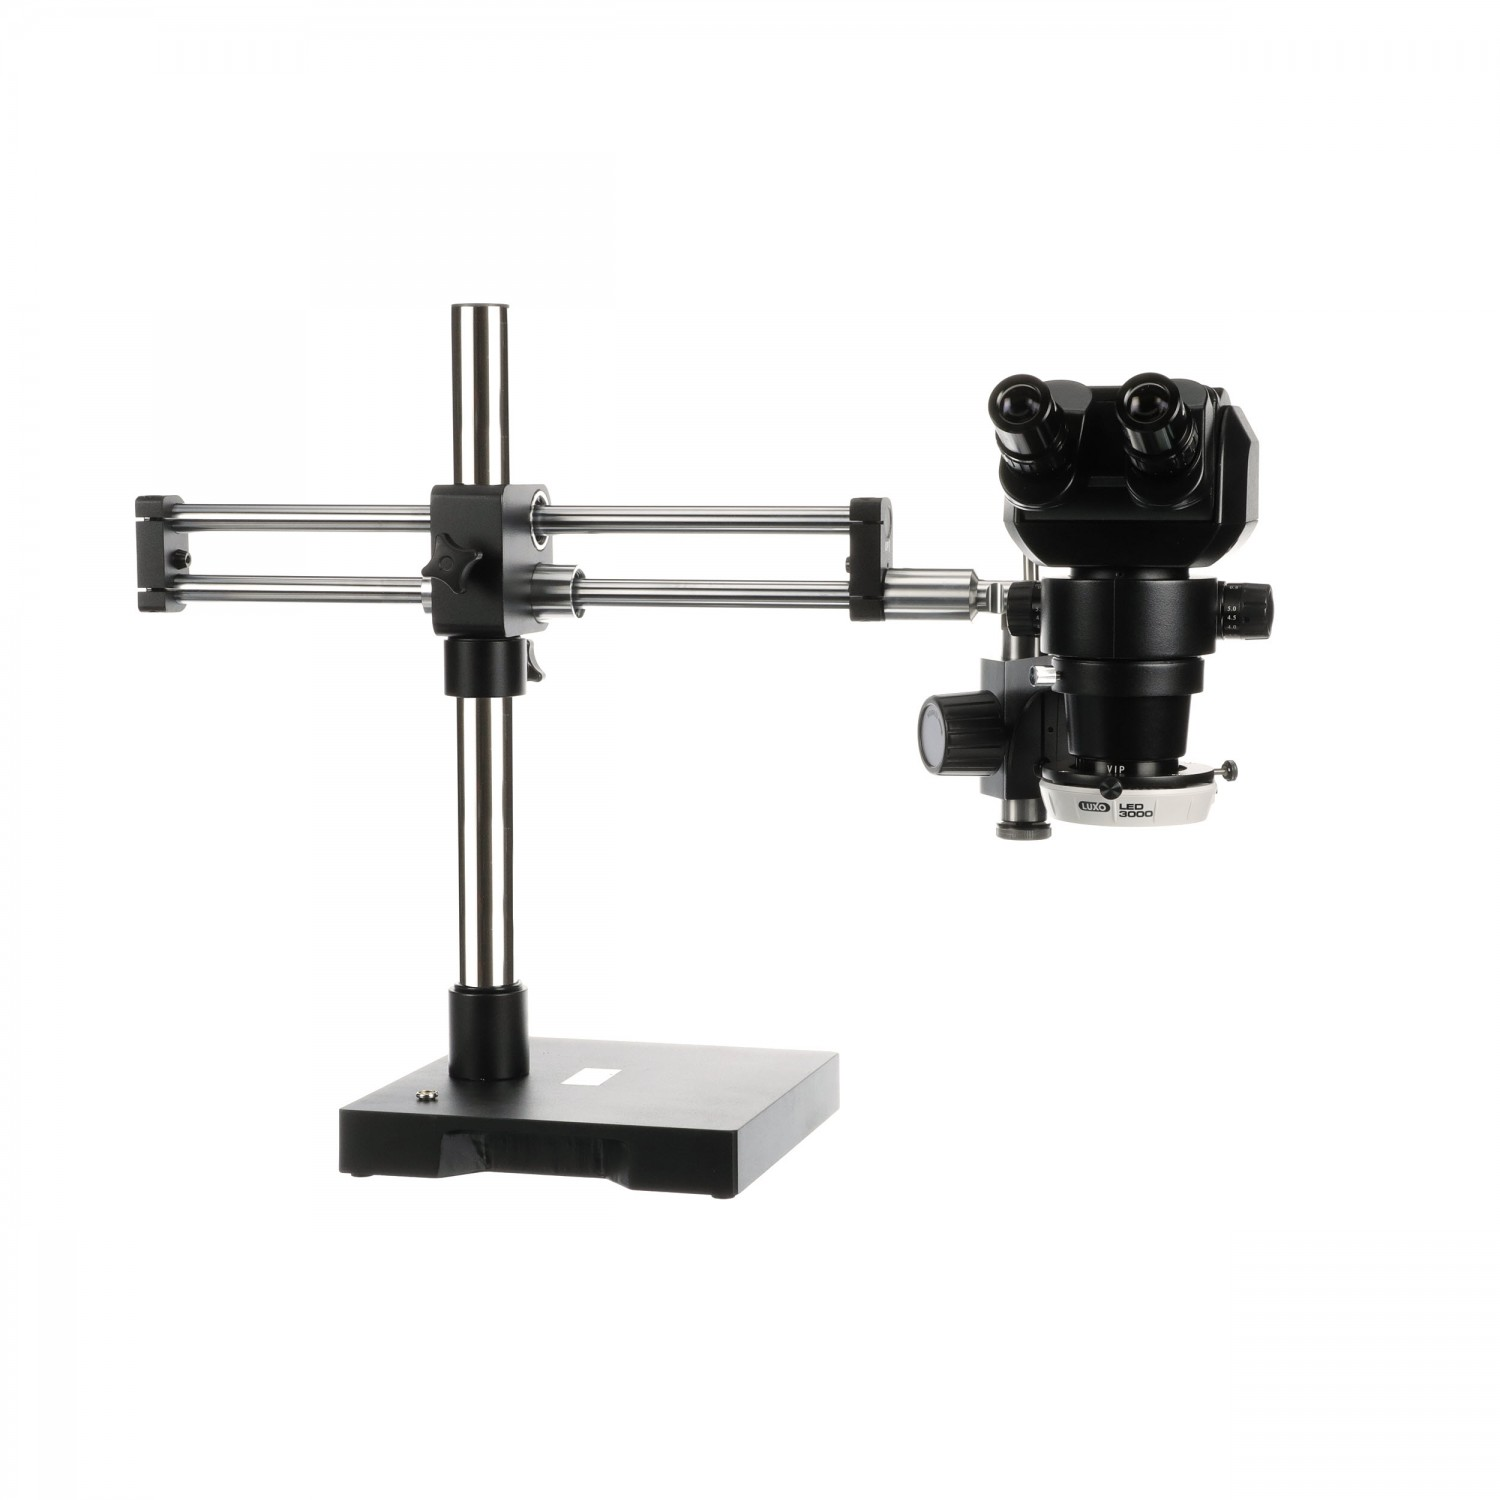 Luxo Microscope System ESD-Safe, VIP Microscope, RB Stand, LED-3000 Ring Light